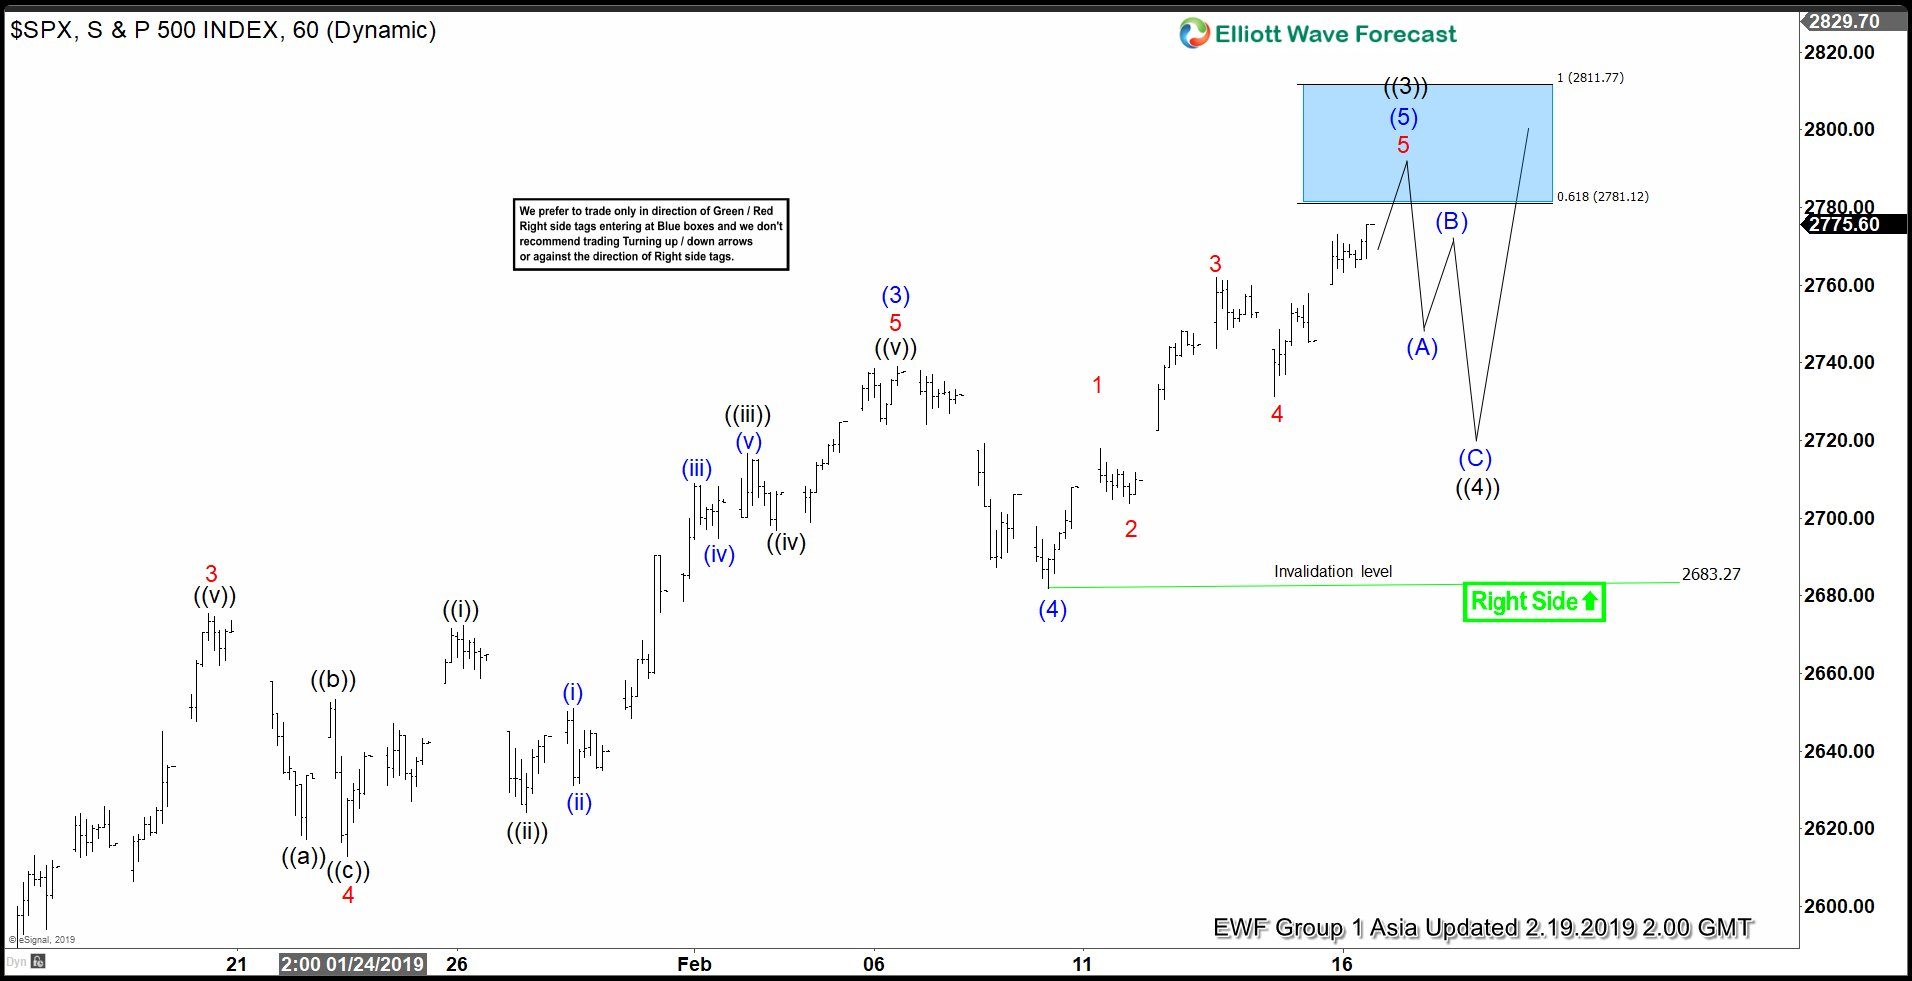 Elliott Wave View: SPX rallies as an Impulse